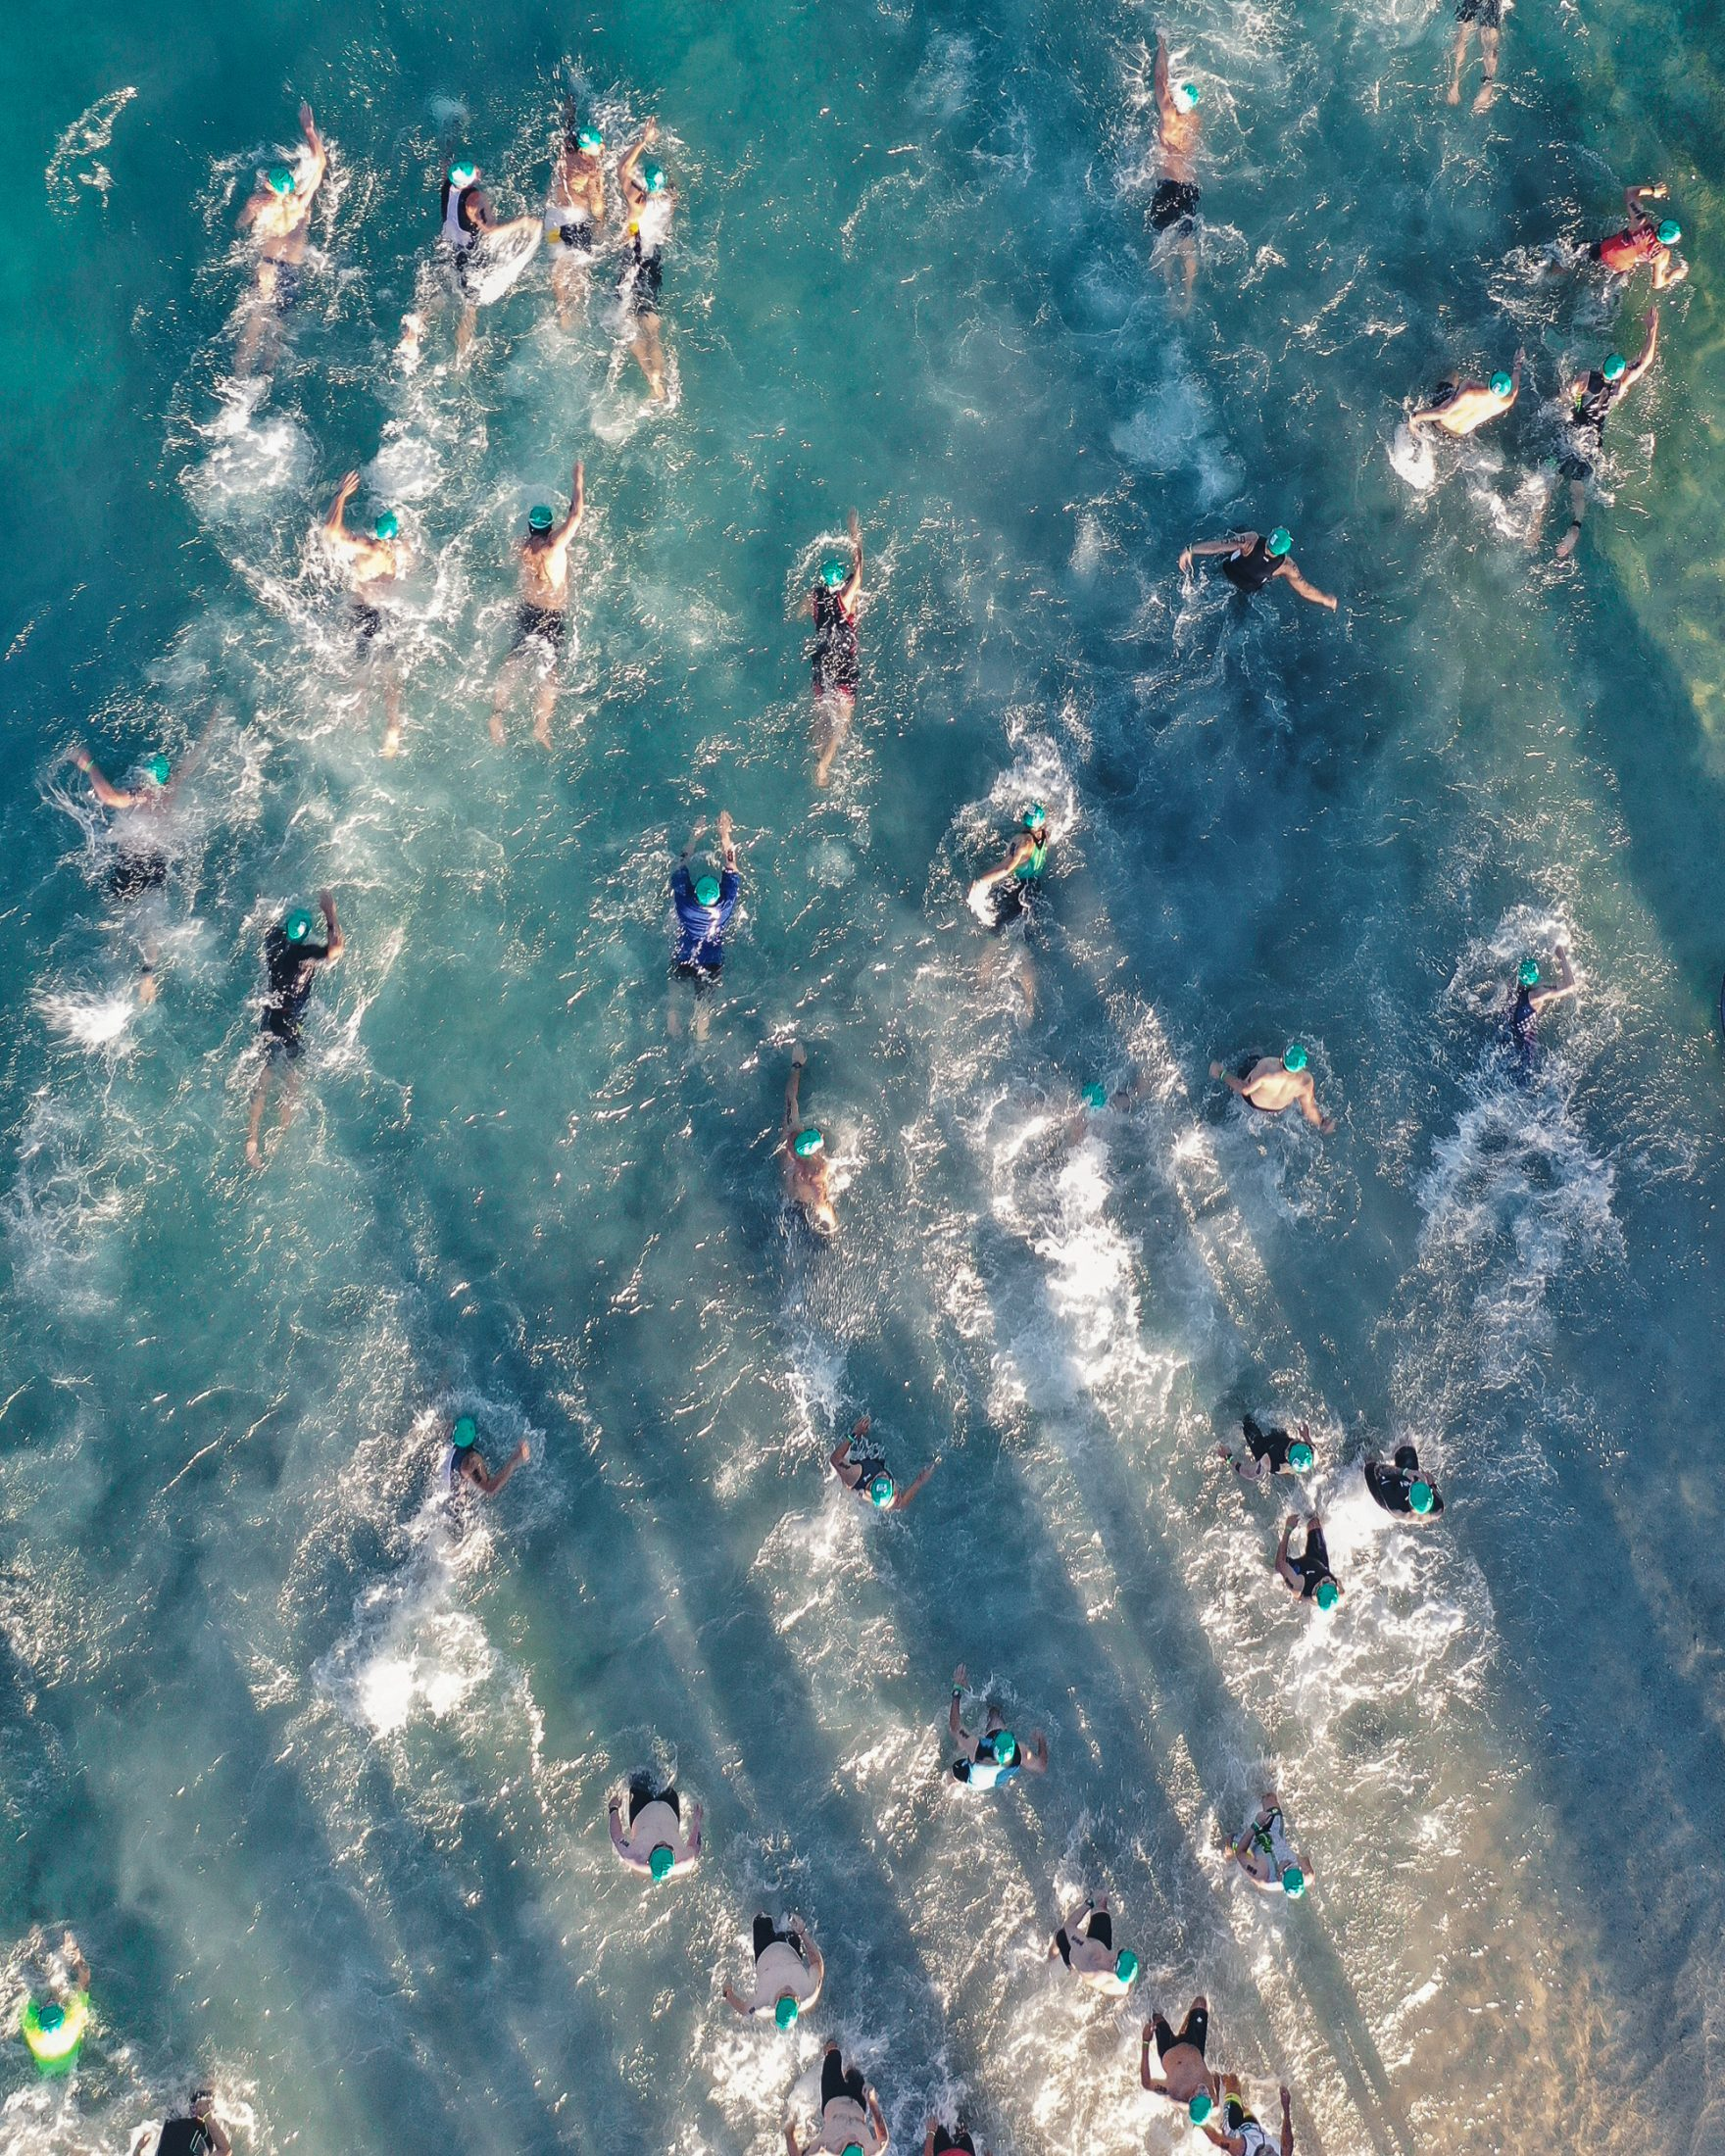 Honolulu Triathalon Swimming